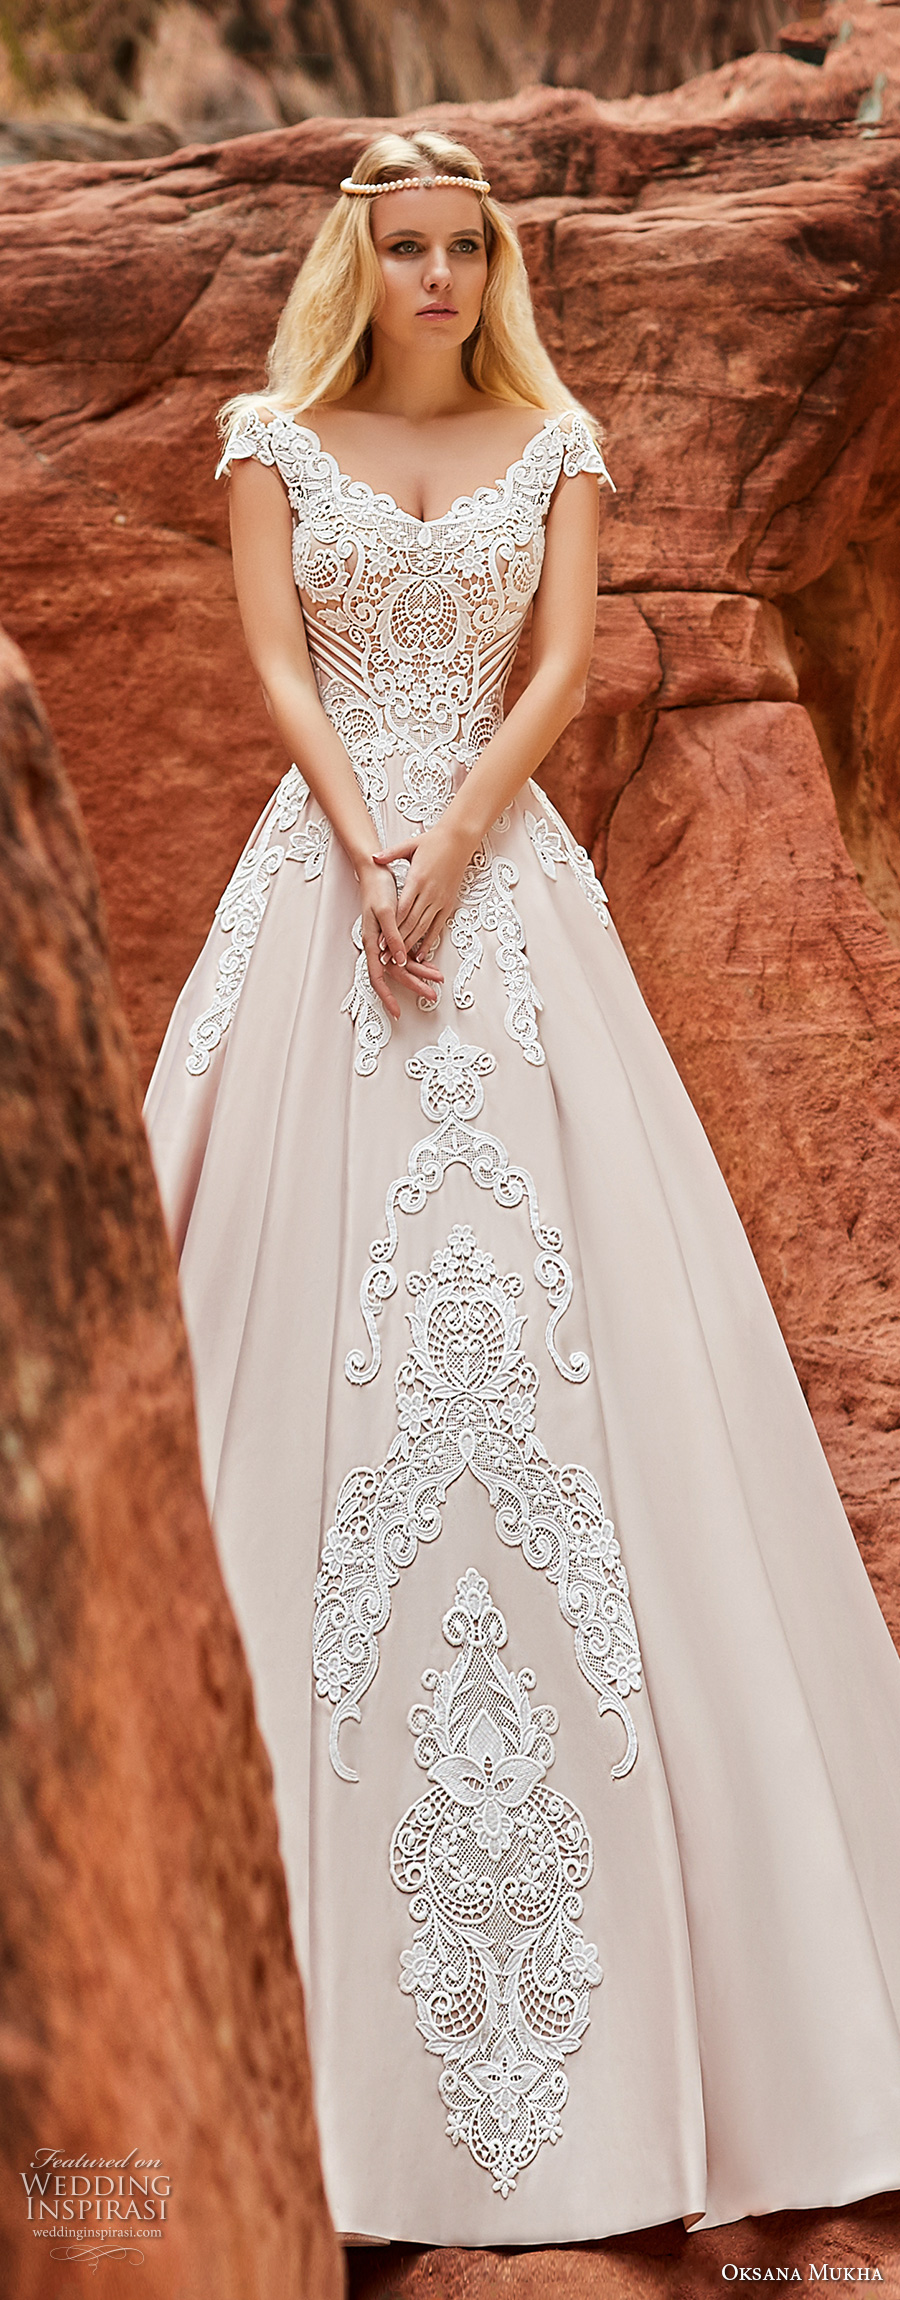 oksana mukha 2018 bridal cap sleeves v neck heavily embellished bodice romantic princess a line wedding dress corset back chapel train (isadora) mv